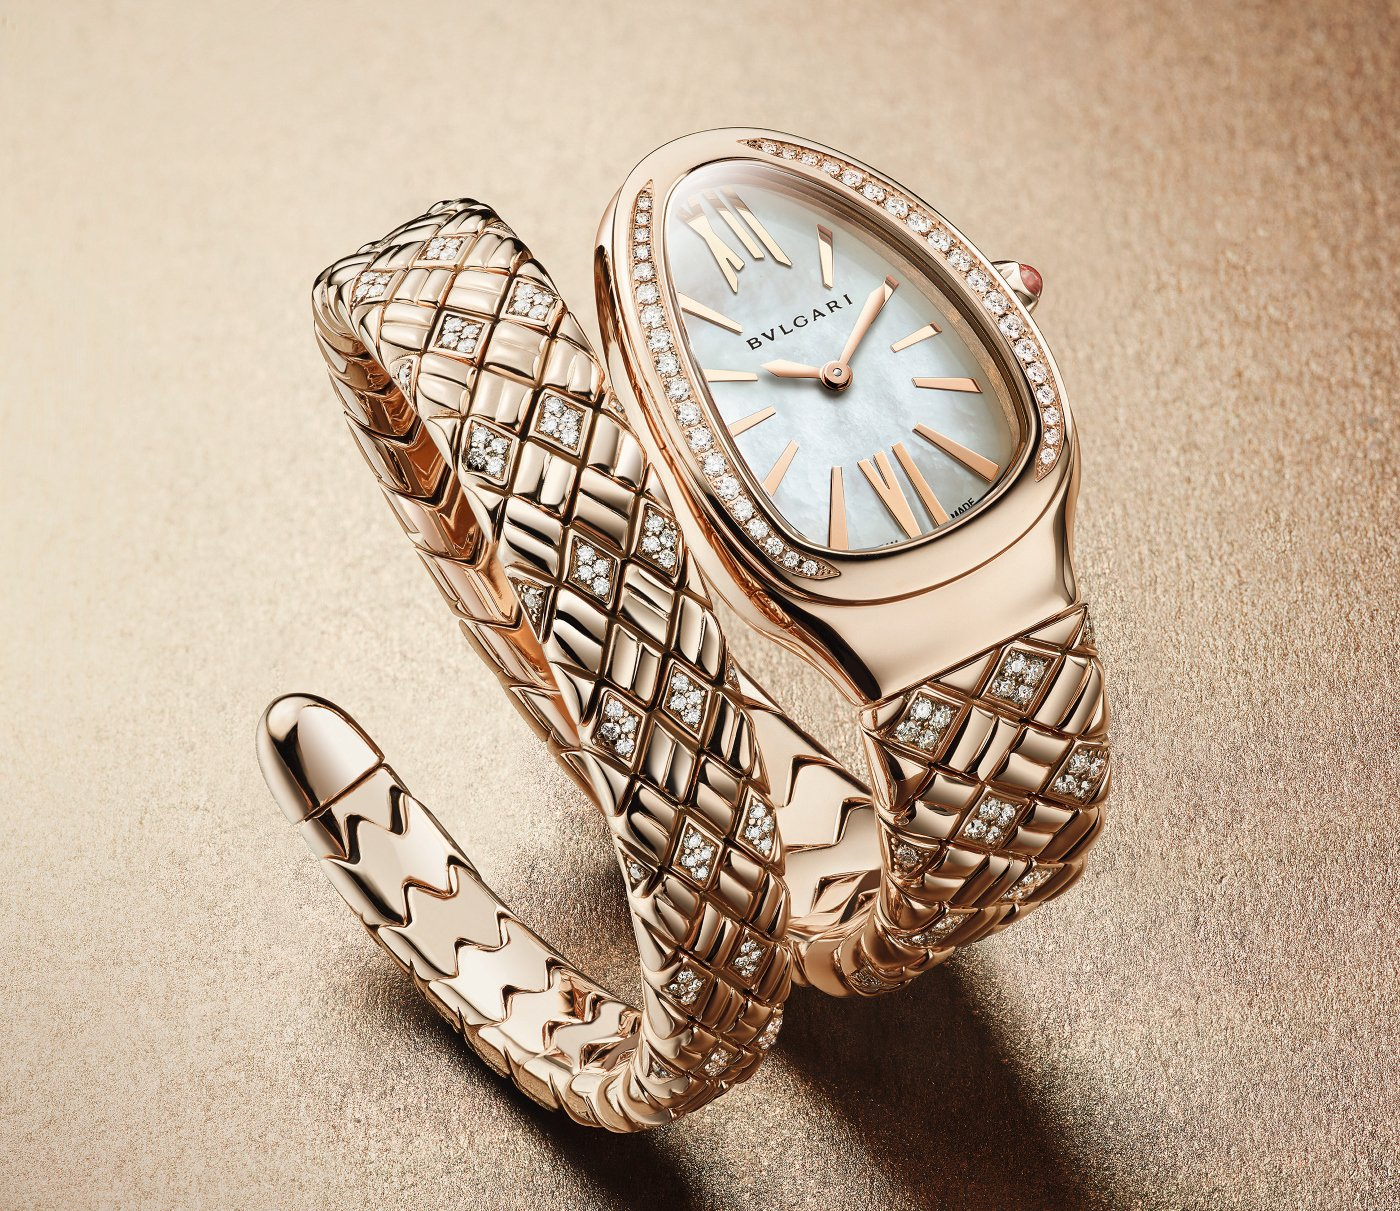 Bulgari_serpenti_spiga_gold_-_europa_star_watch_magazine_2021